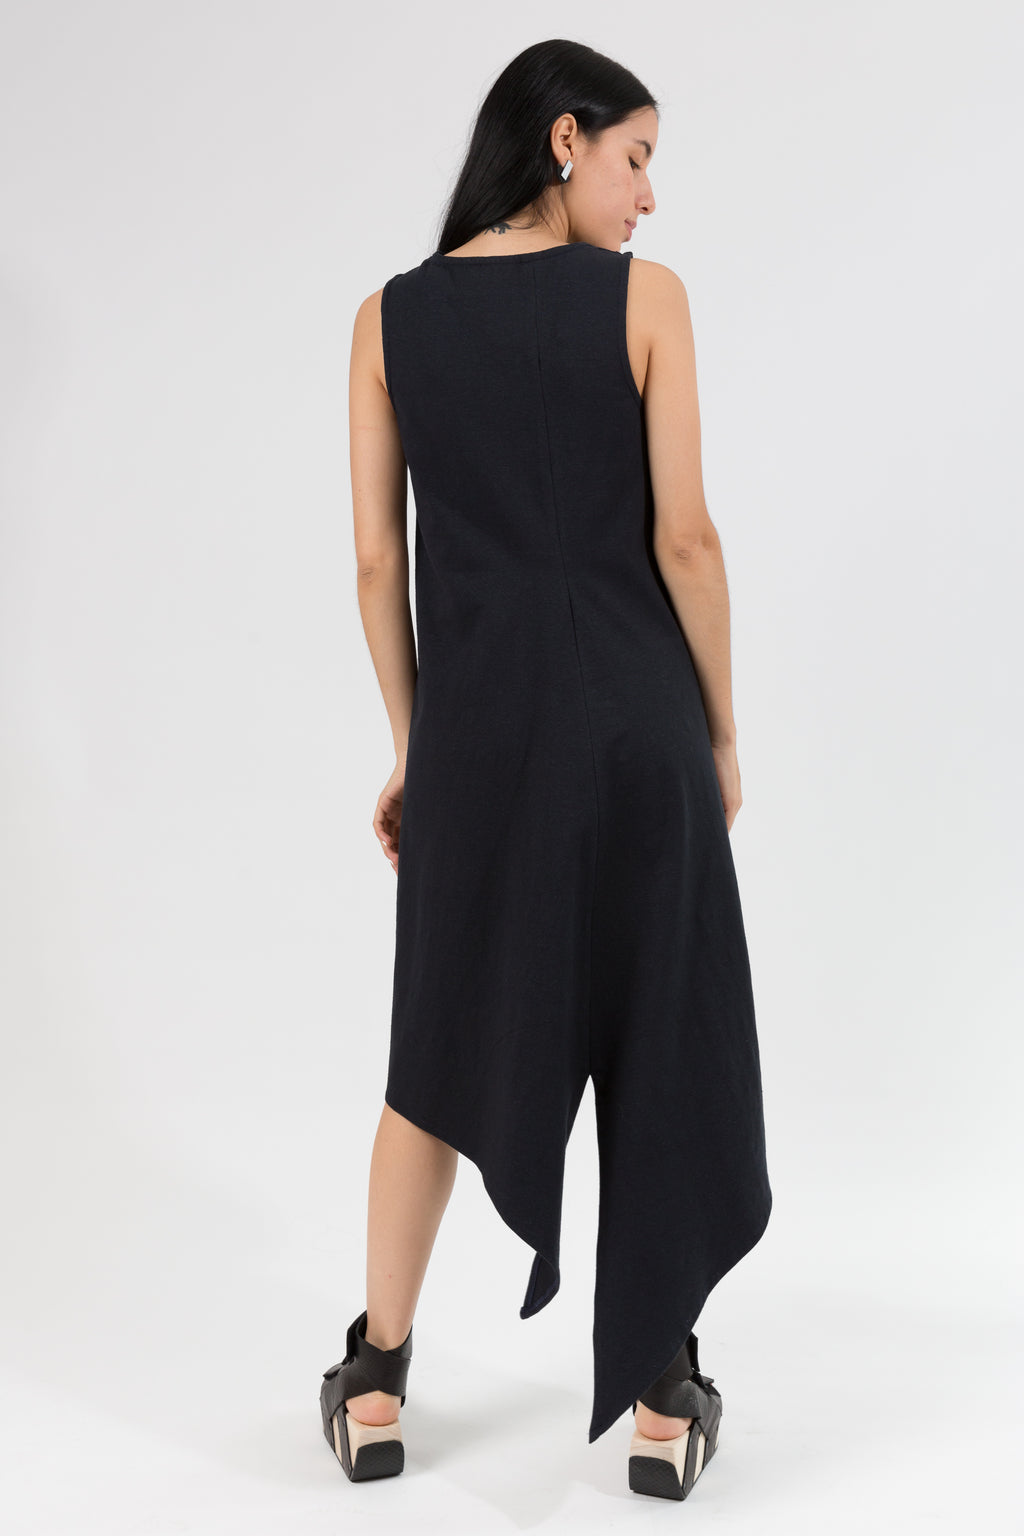 Trapezoid Dress in Hemp Organic Cotton